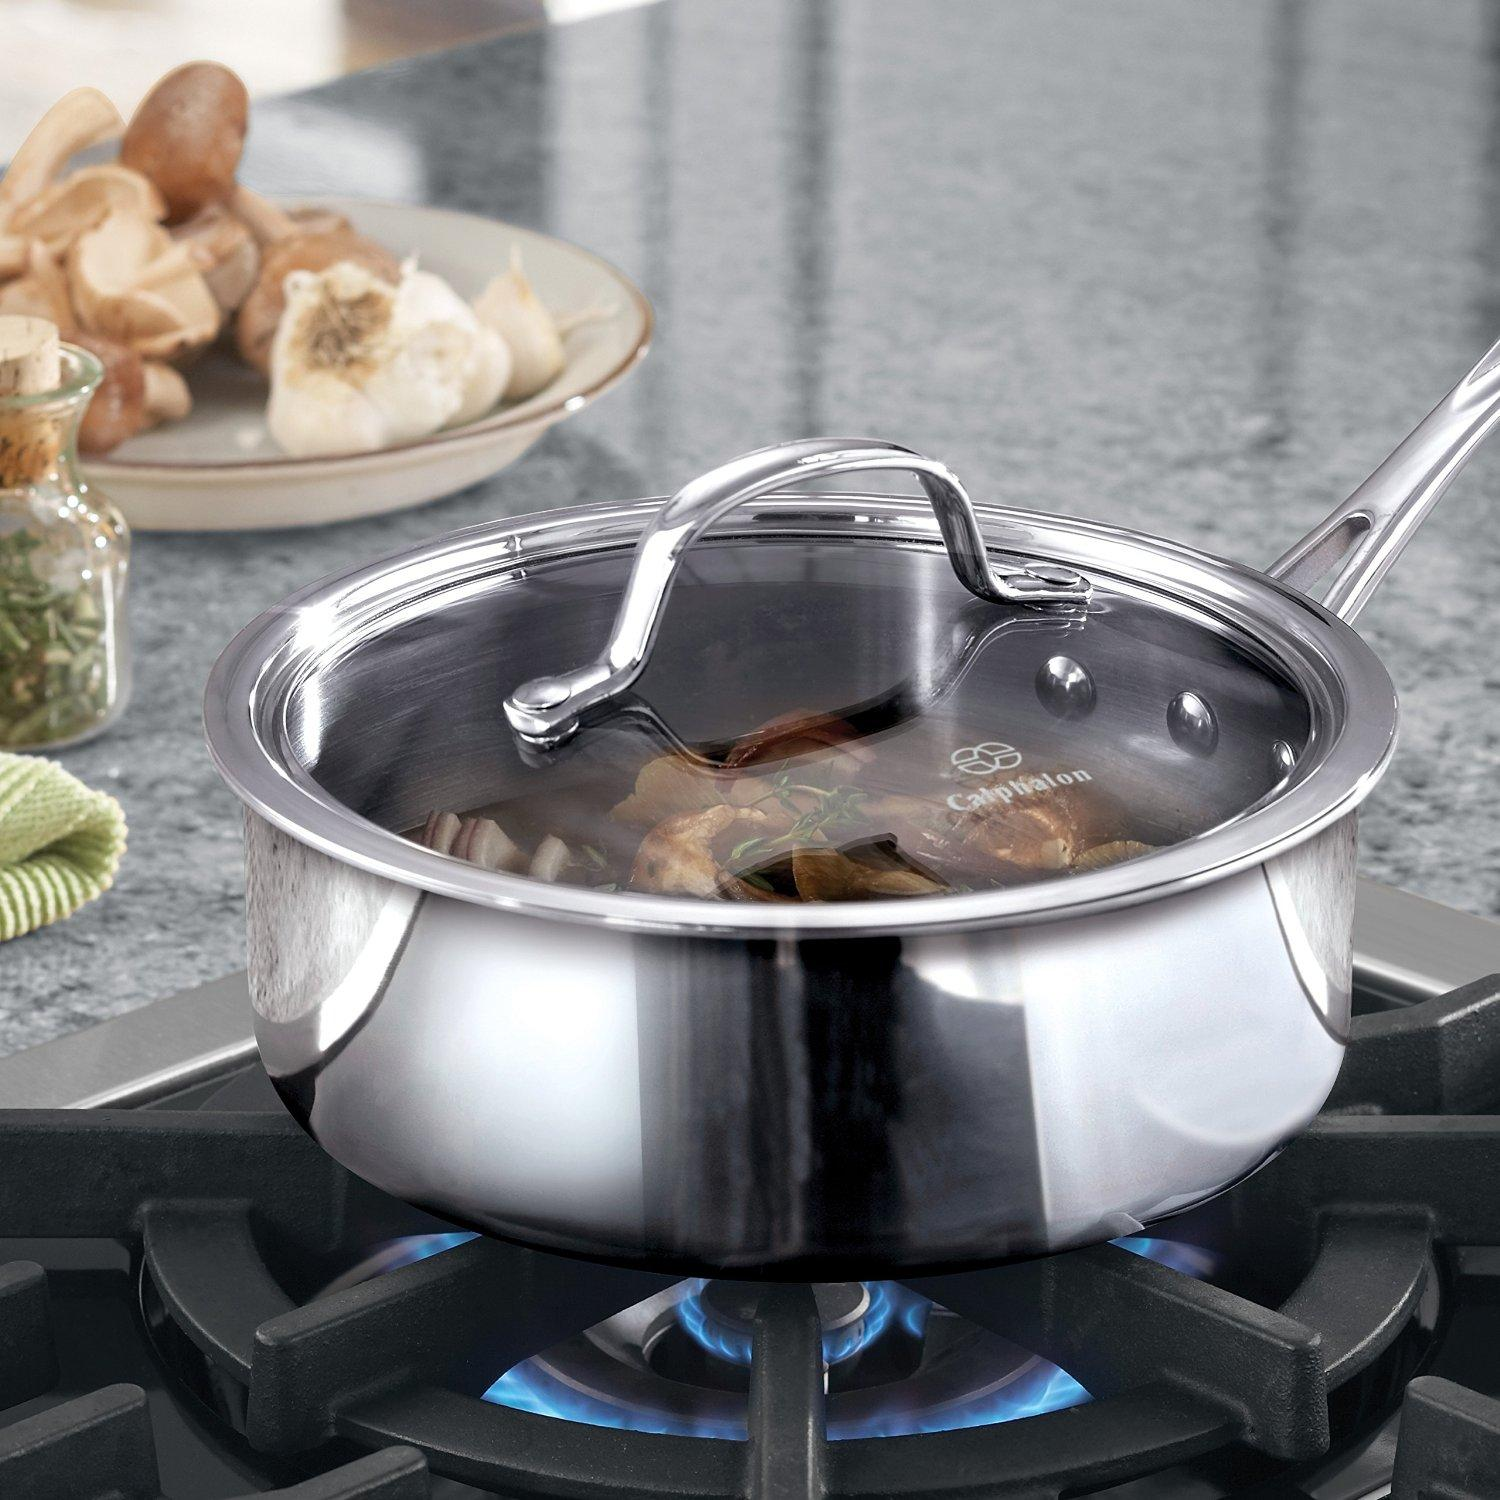 Calphalon Tri-Ply Stainless Steel 2-1/2-Quart Shallow Sauce with Cover